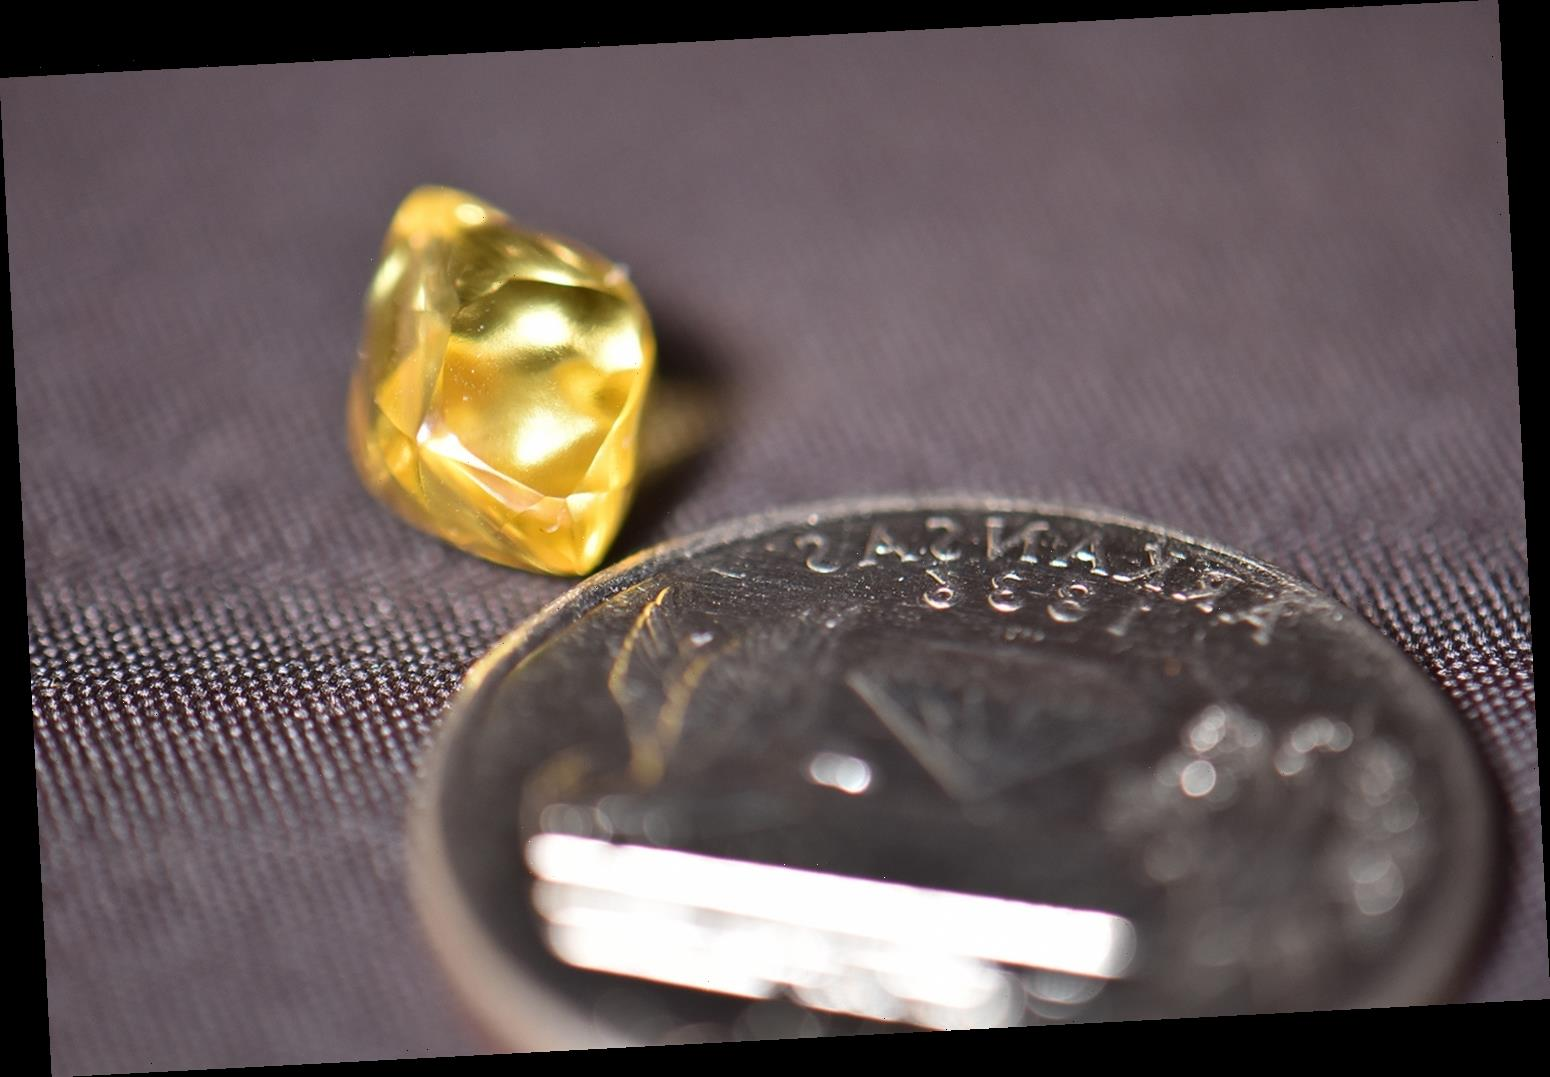 Man Finds 4.49-Carat Canary Diamond in Same Ark. Park Where a 9-Carat Diamond Was Unearthed